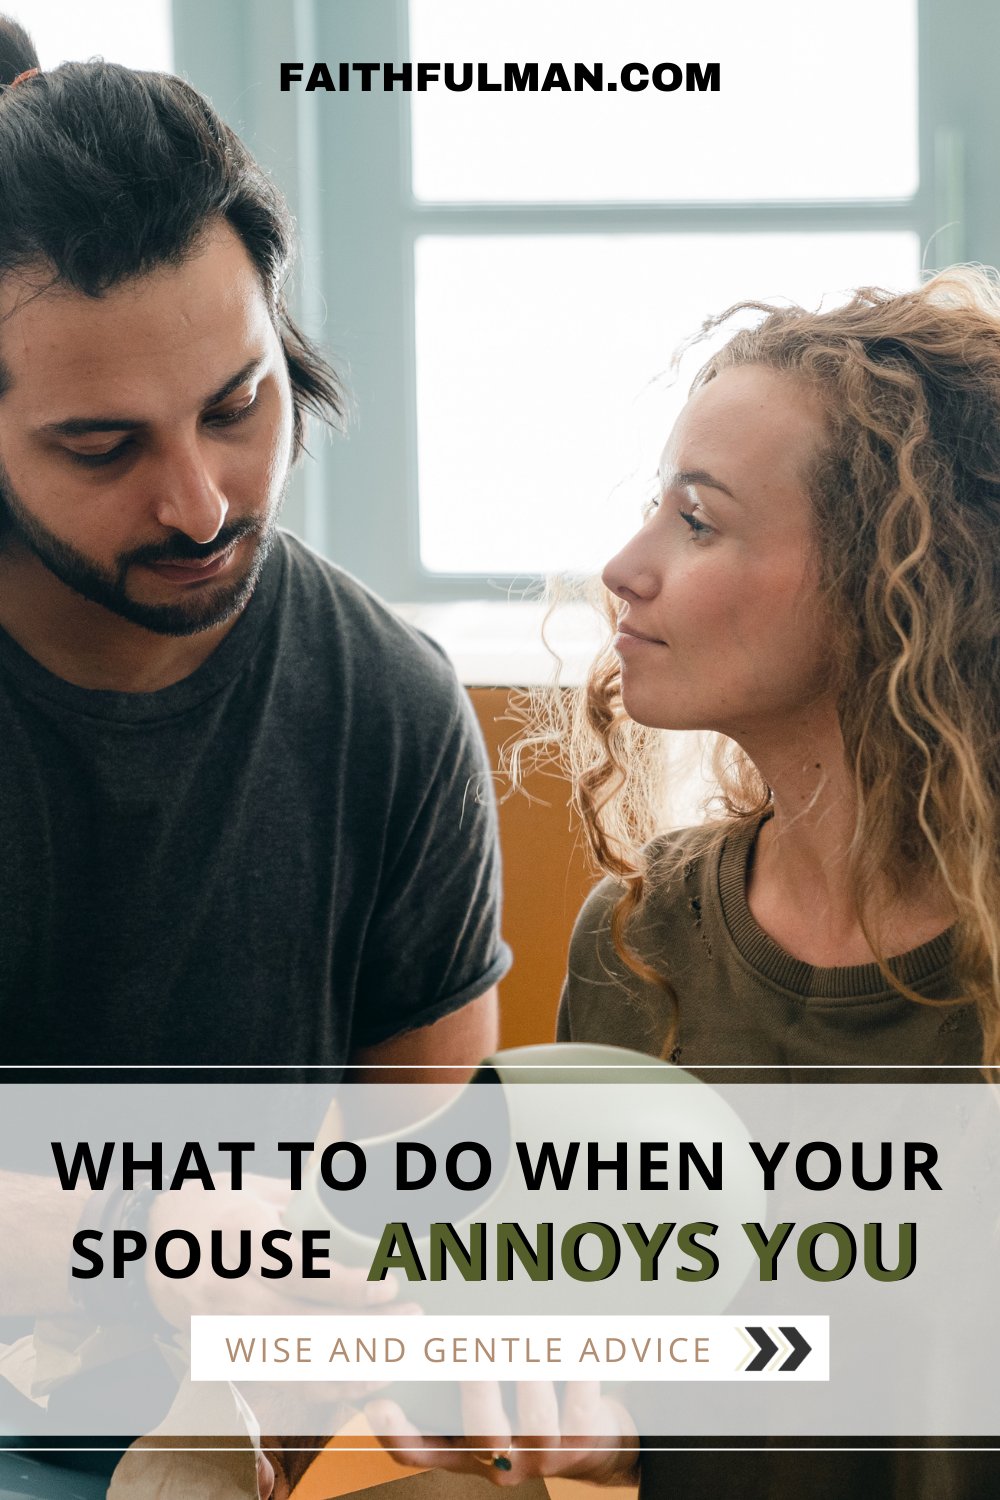 In just a few months or years into marriage, those exact same preferences you loved may begin to migrate from endearing to annoying. How did that happen? And what should you do about them? Click here. via @faithful_man